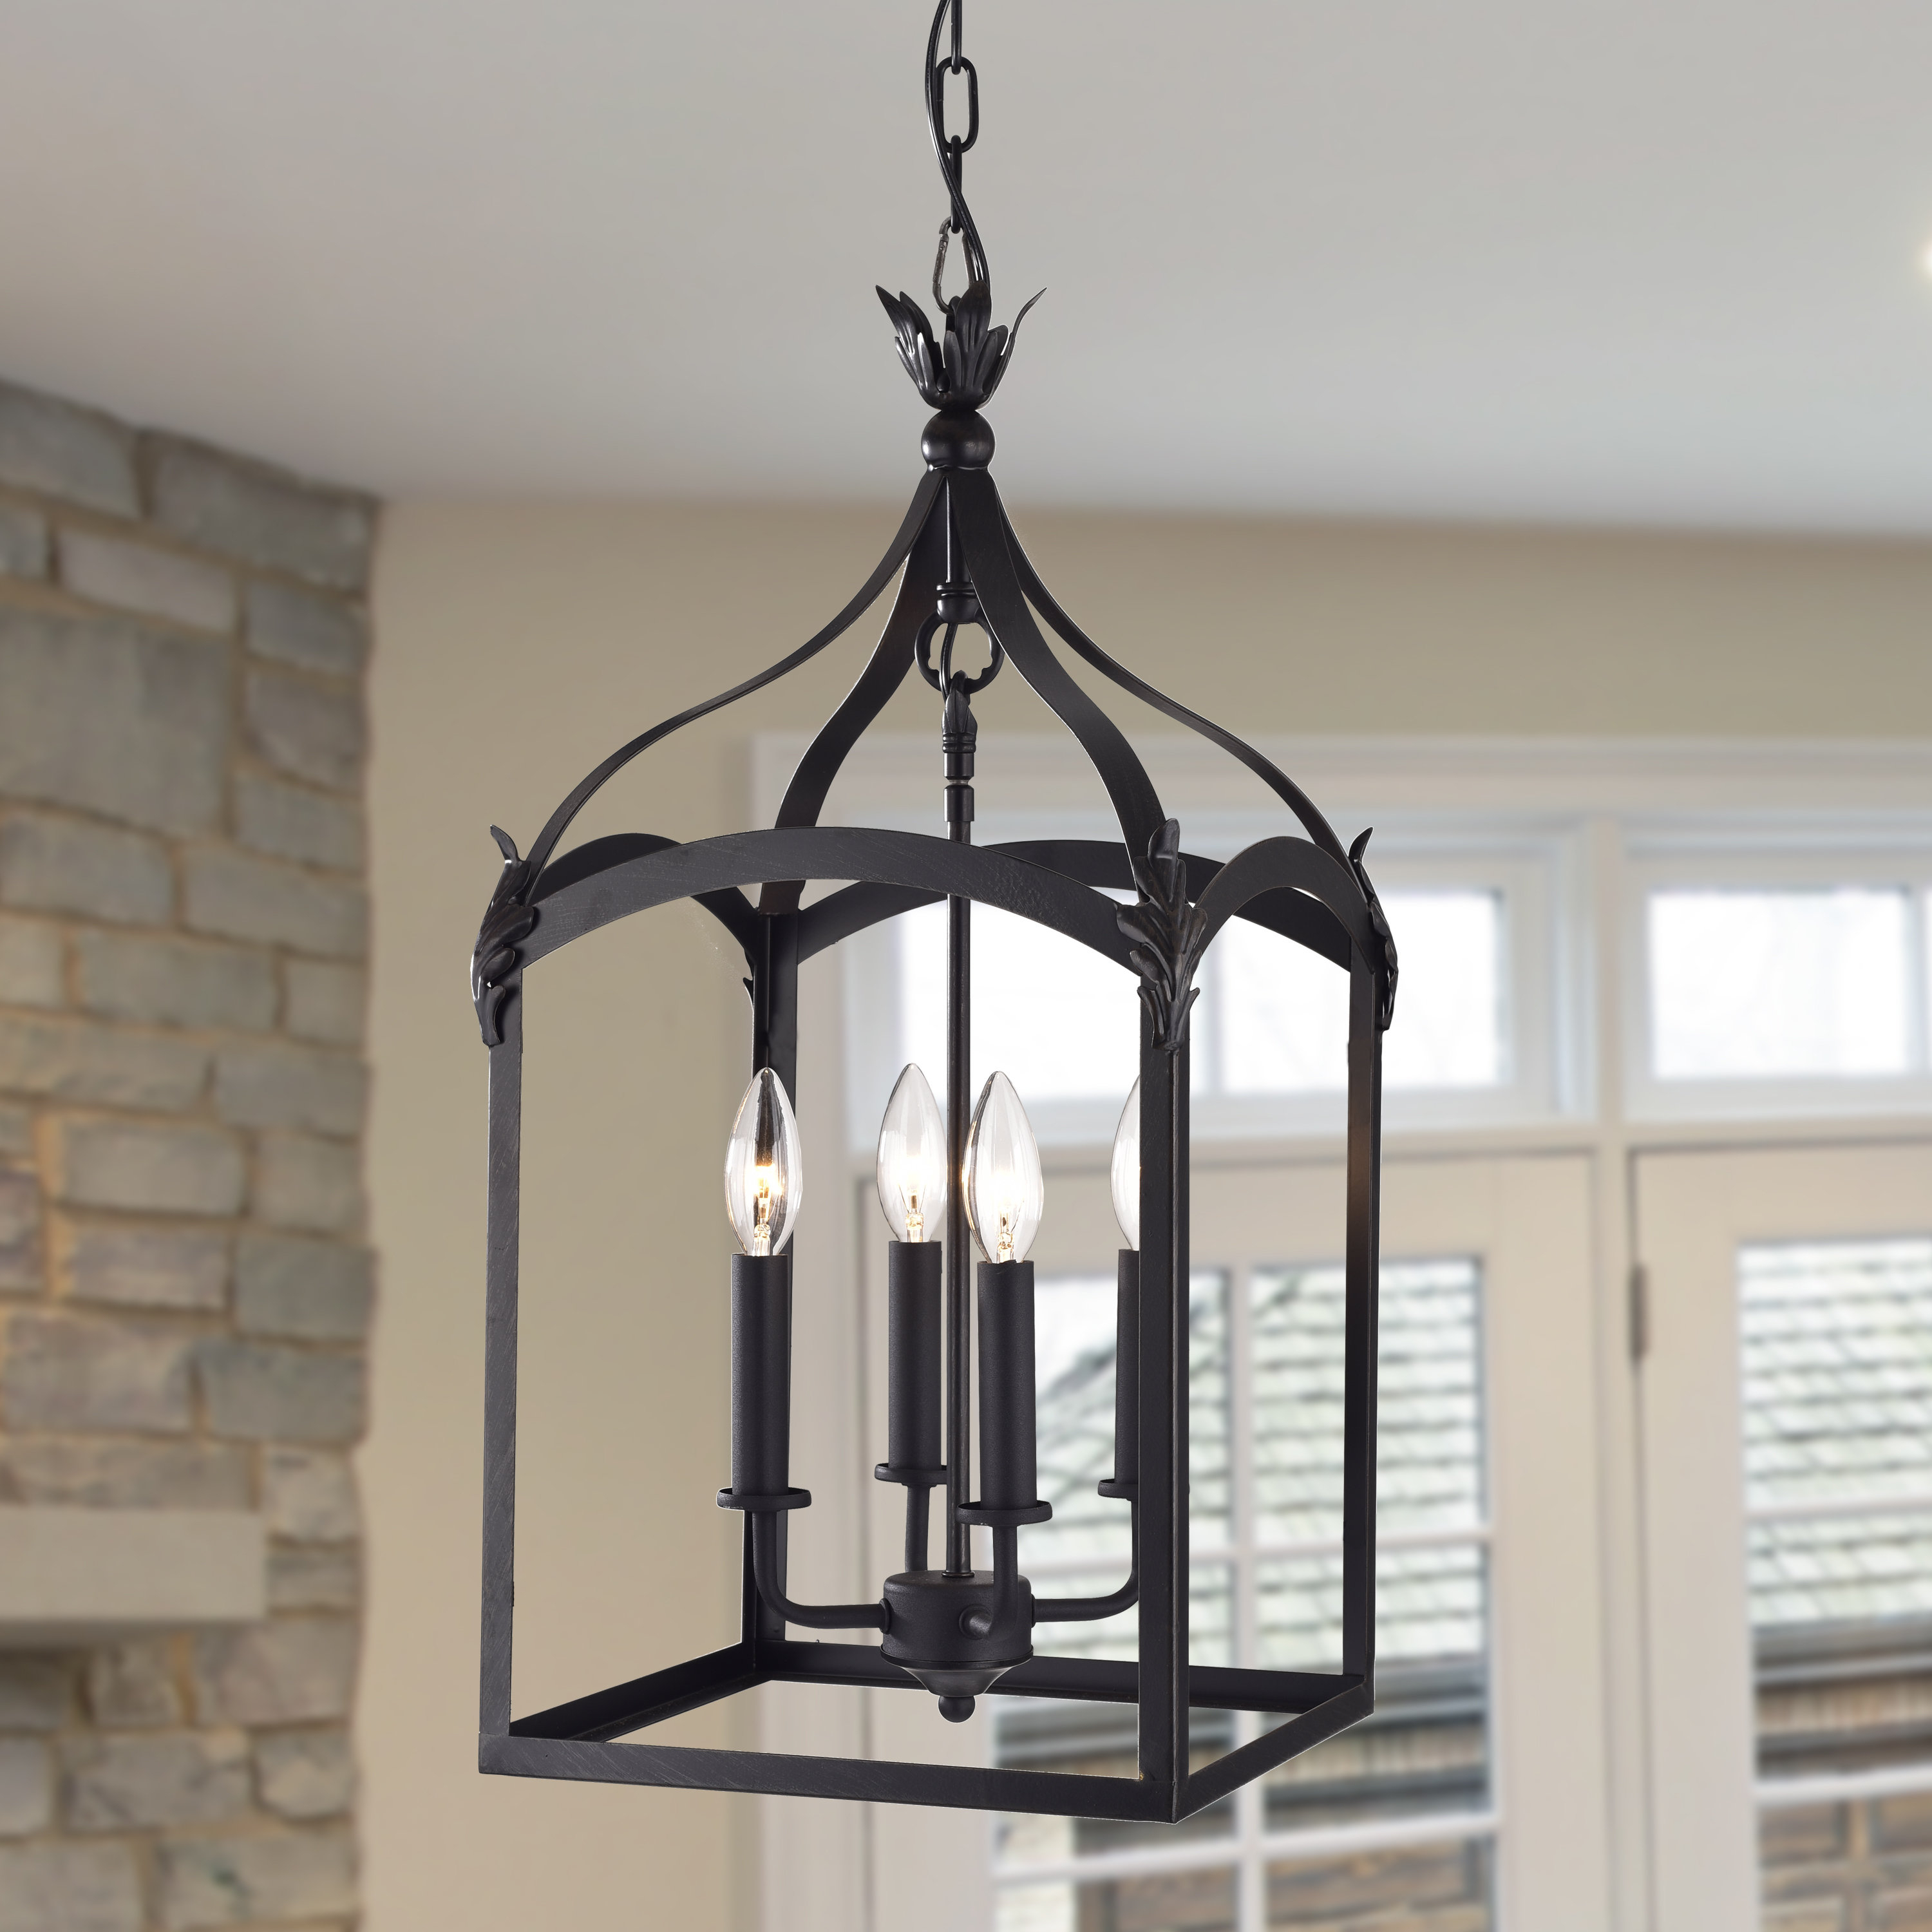 Darby Home Co Forsyth 4 Light Lantern Geometric Pendant With 2019 Nisbet 4 Light Lantern Geometric Pendants (Gallery 7 of 25)